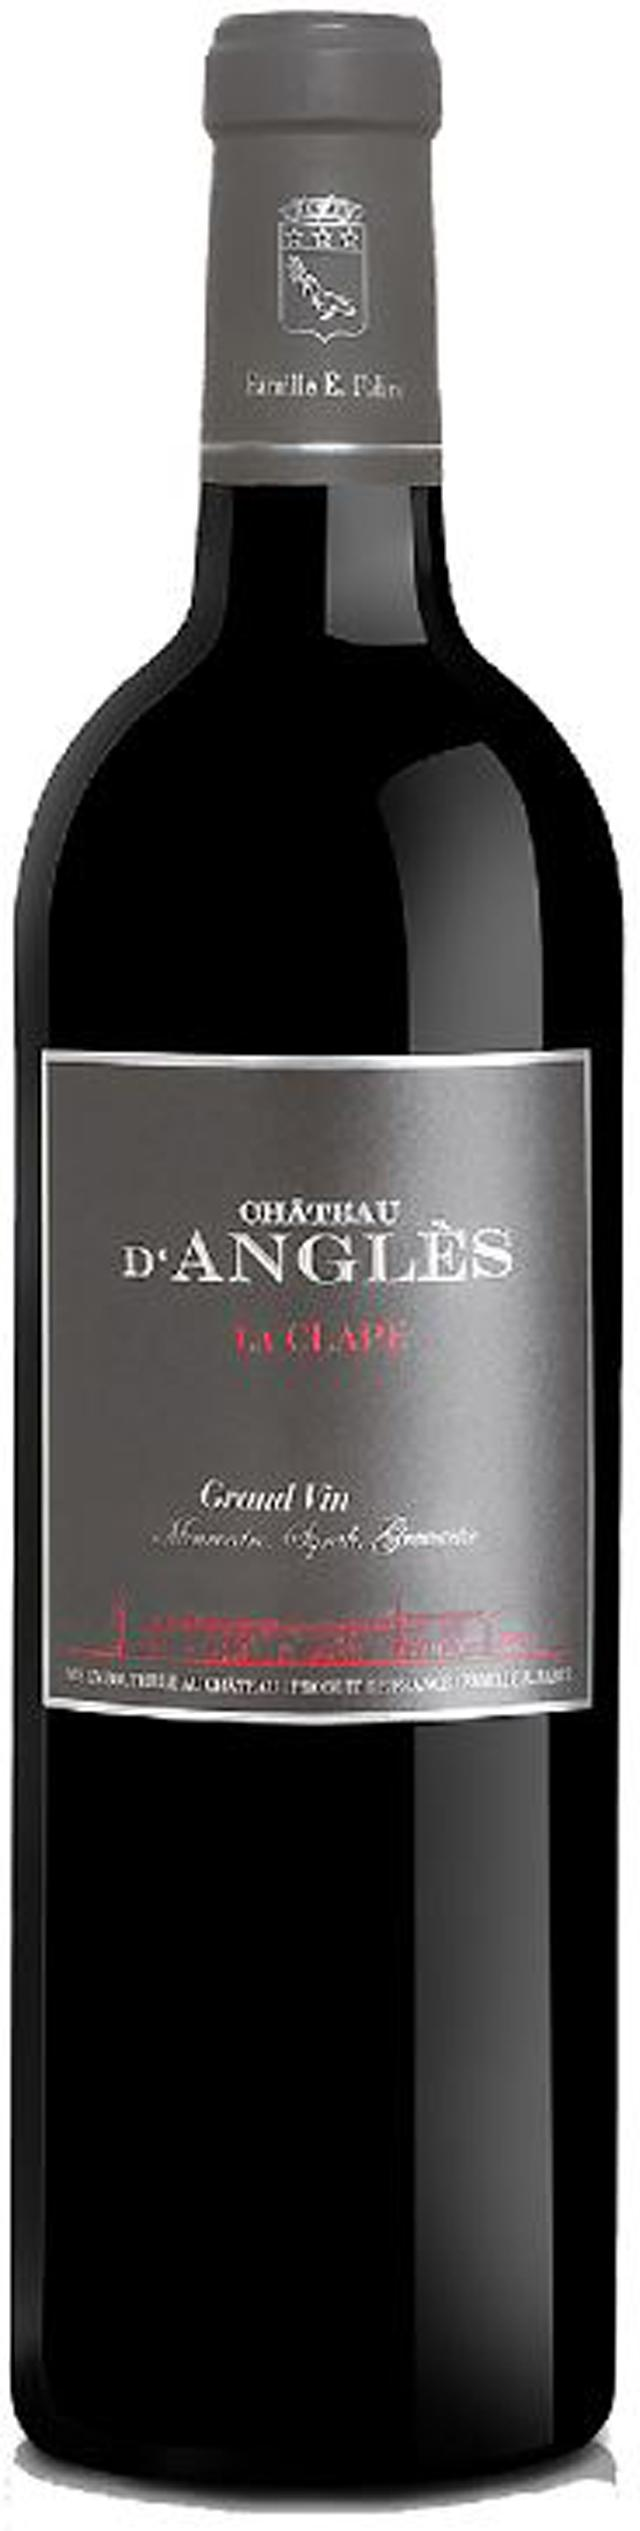 Château d'Angles La Clape Grand Vin 2014.